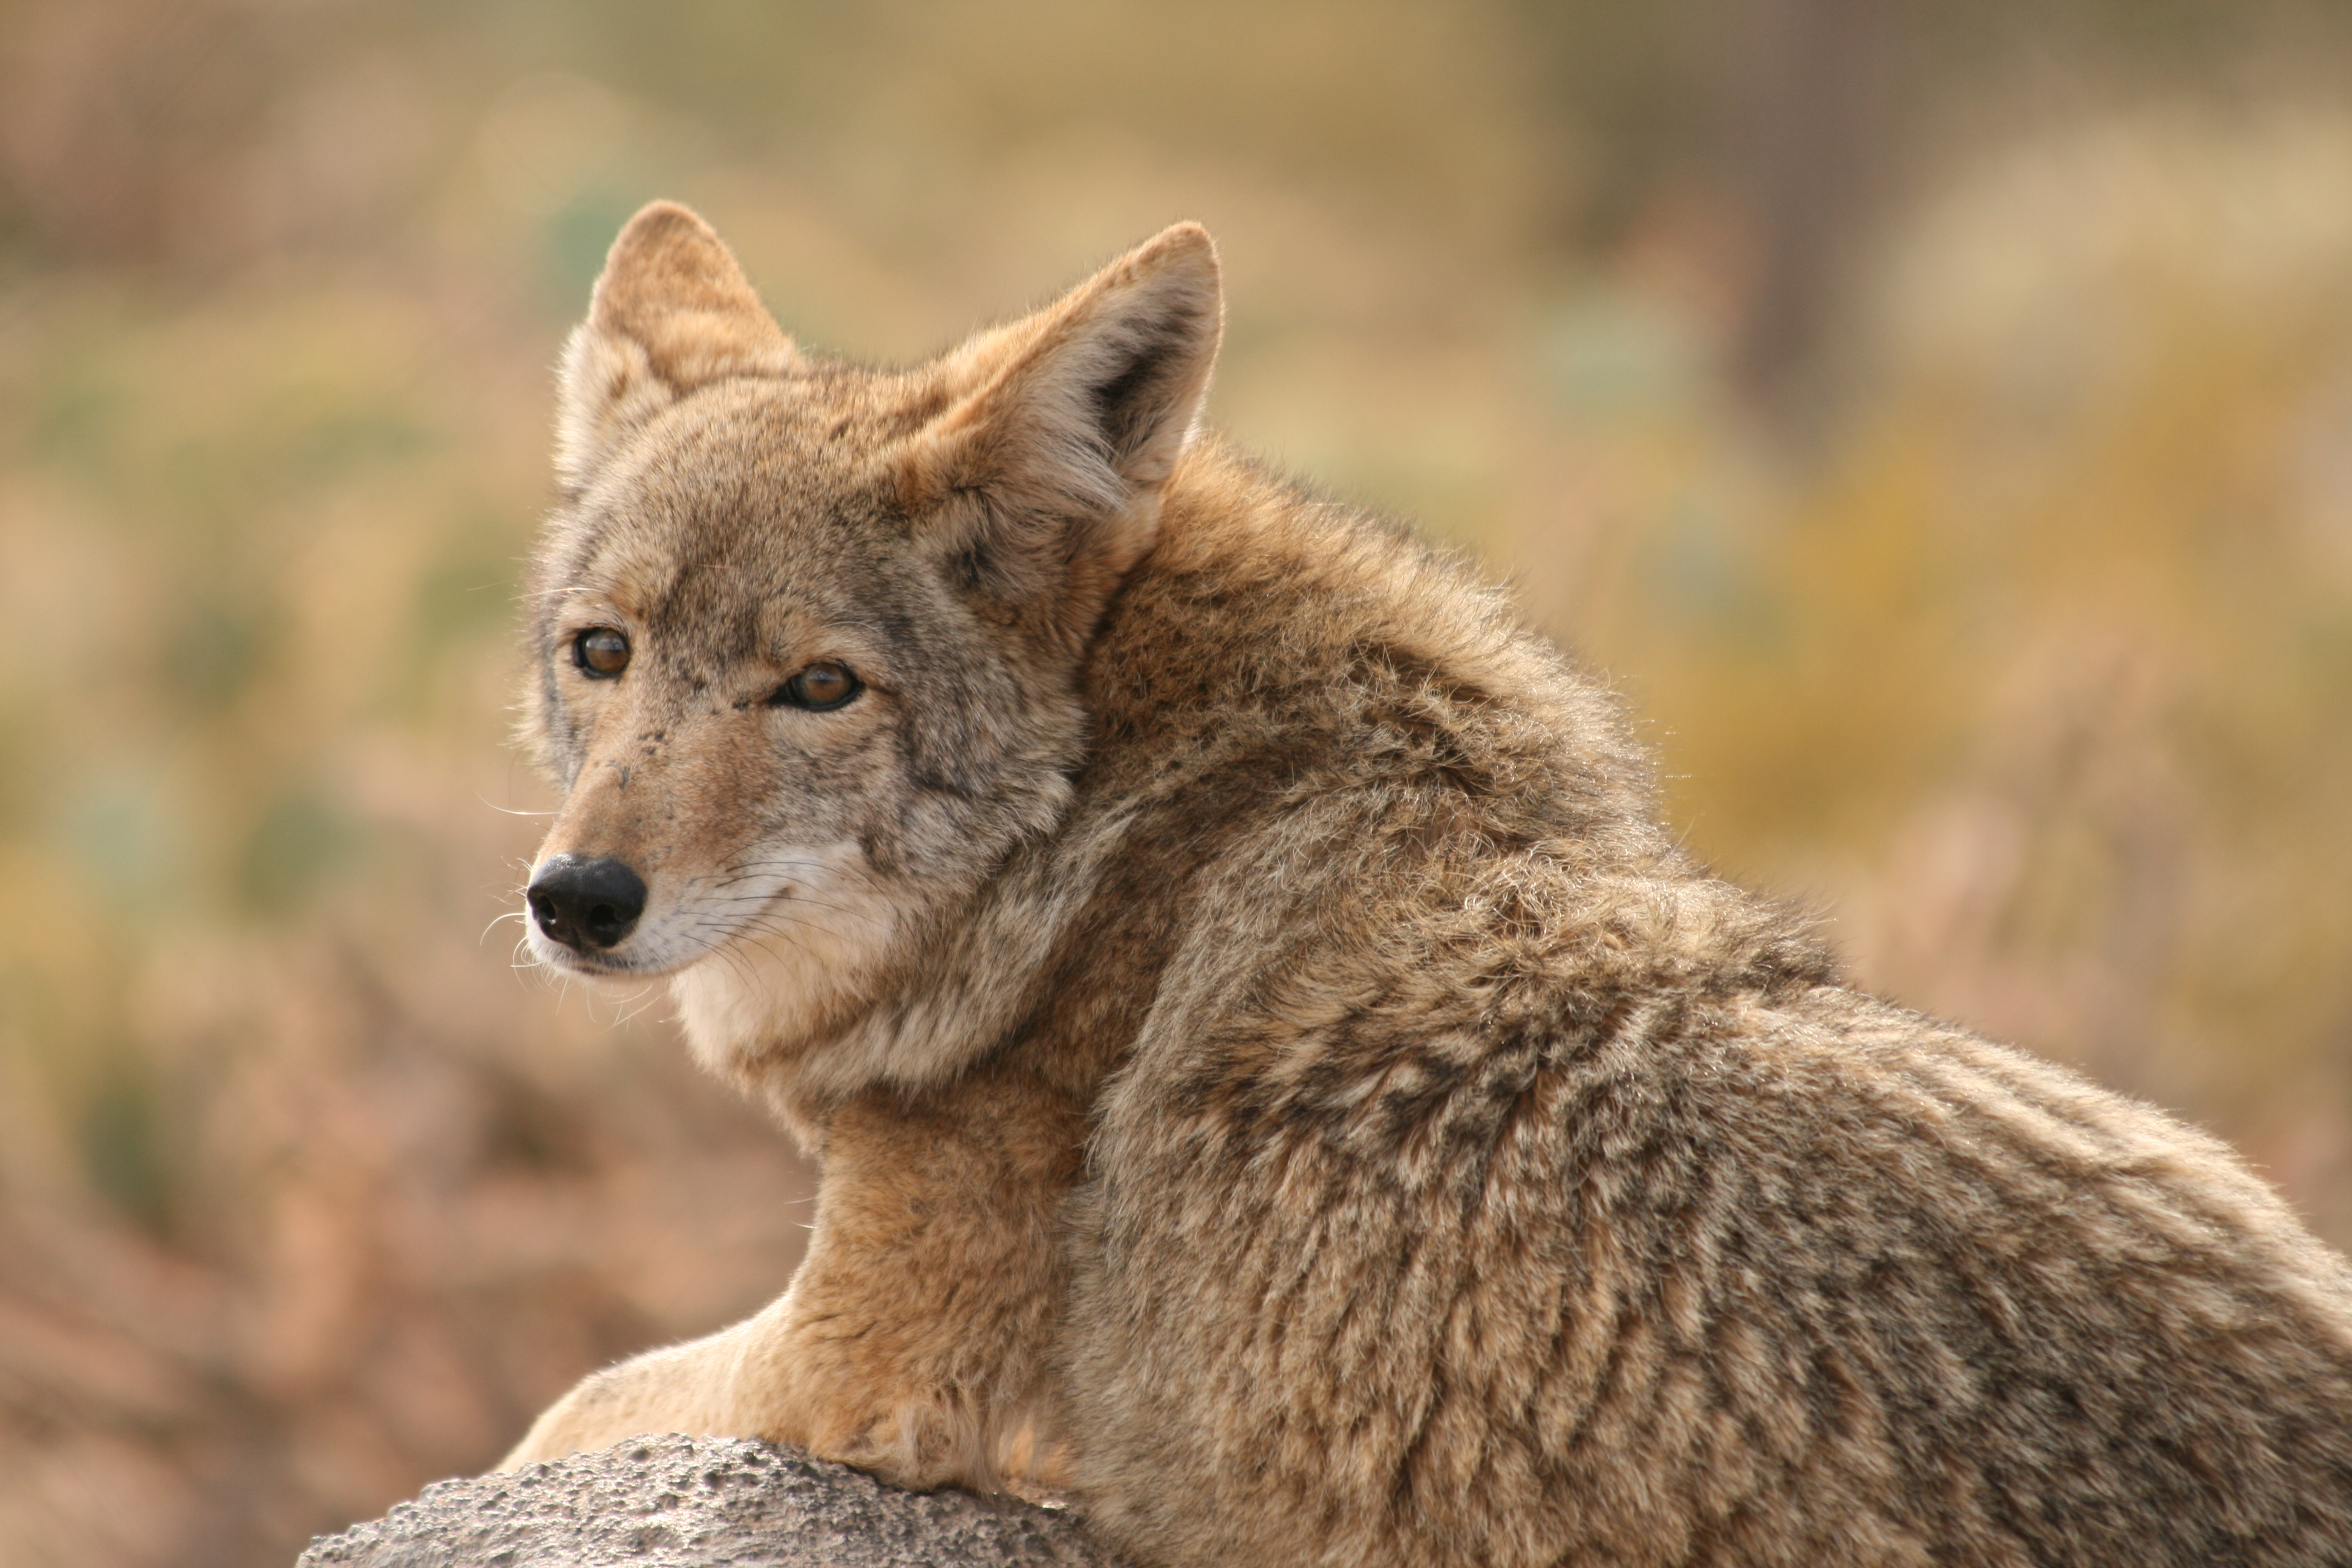 Coyote Sounds: The Major Types And Their Uses